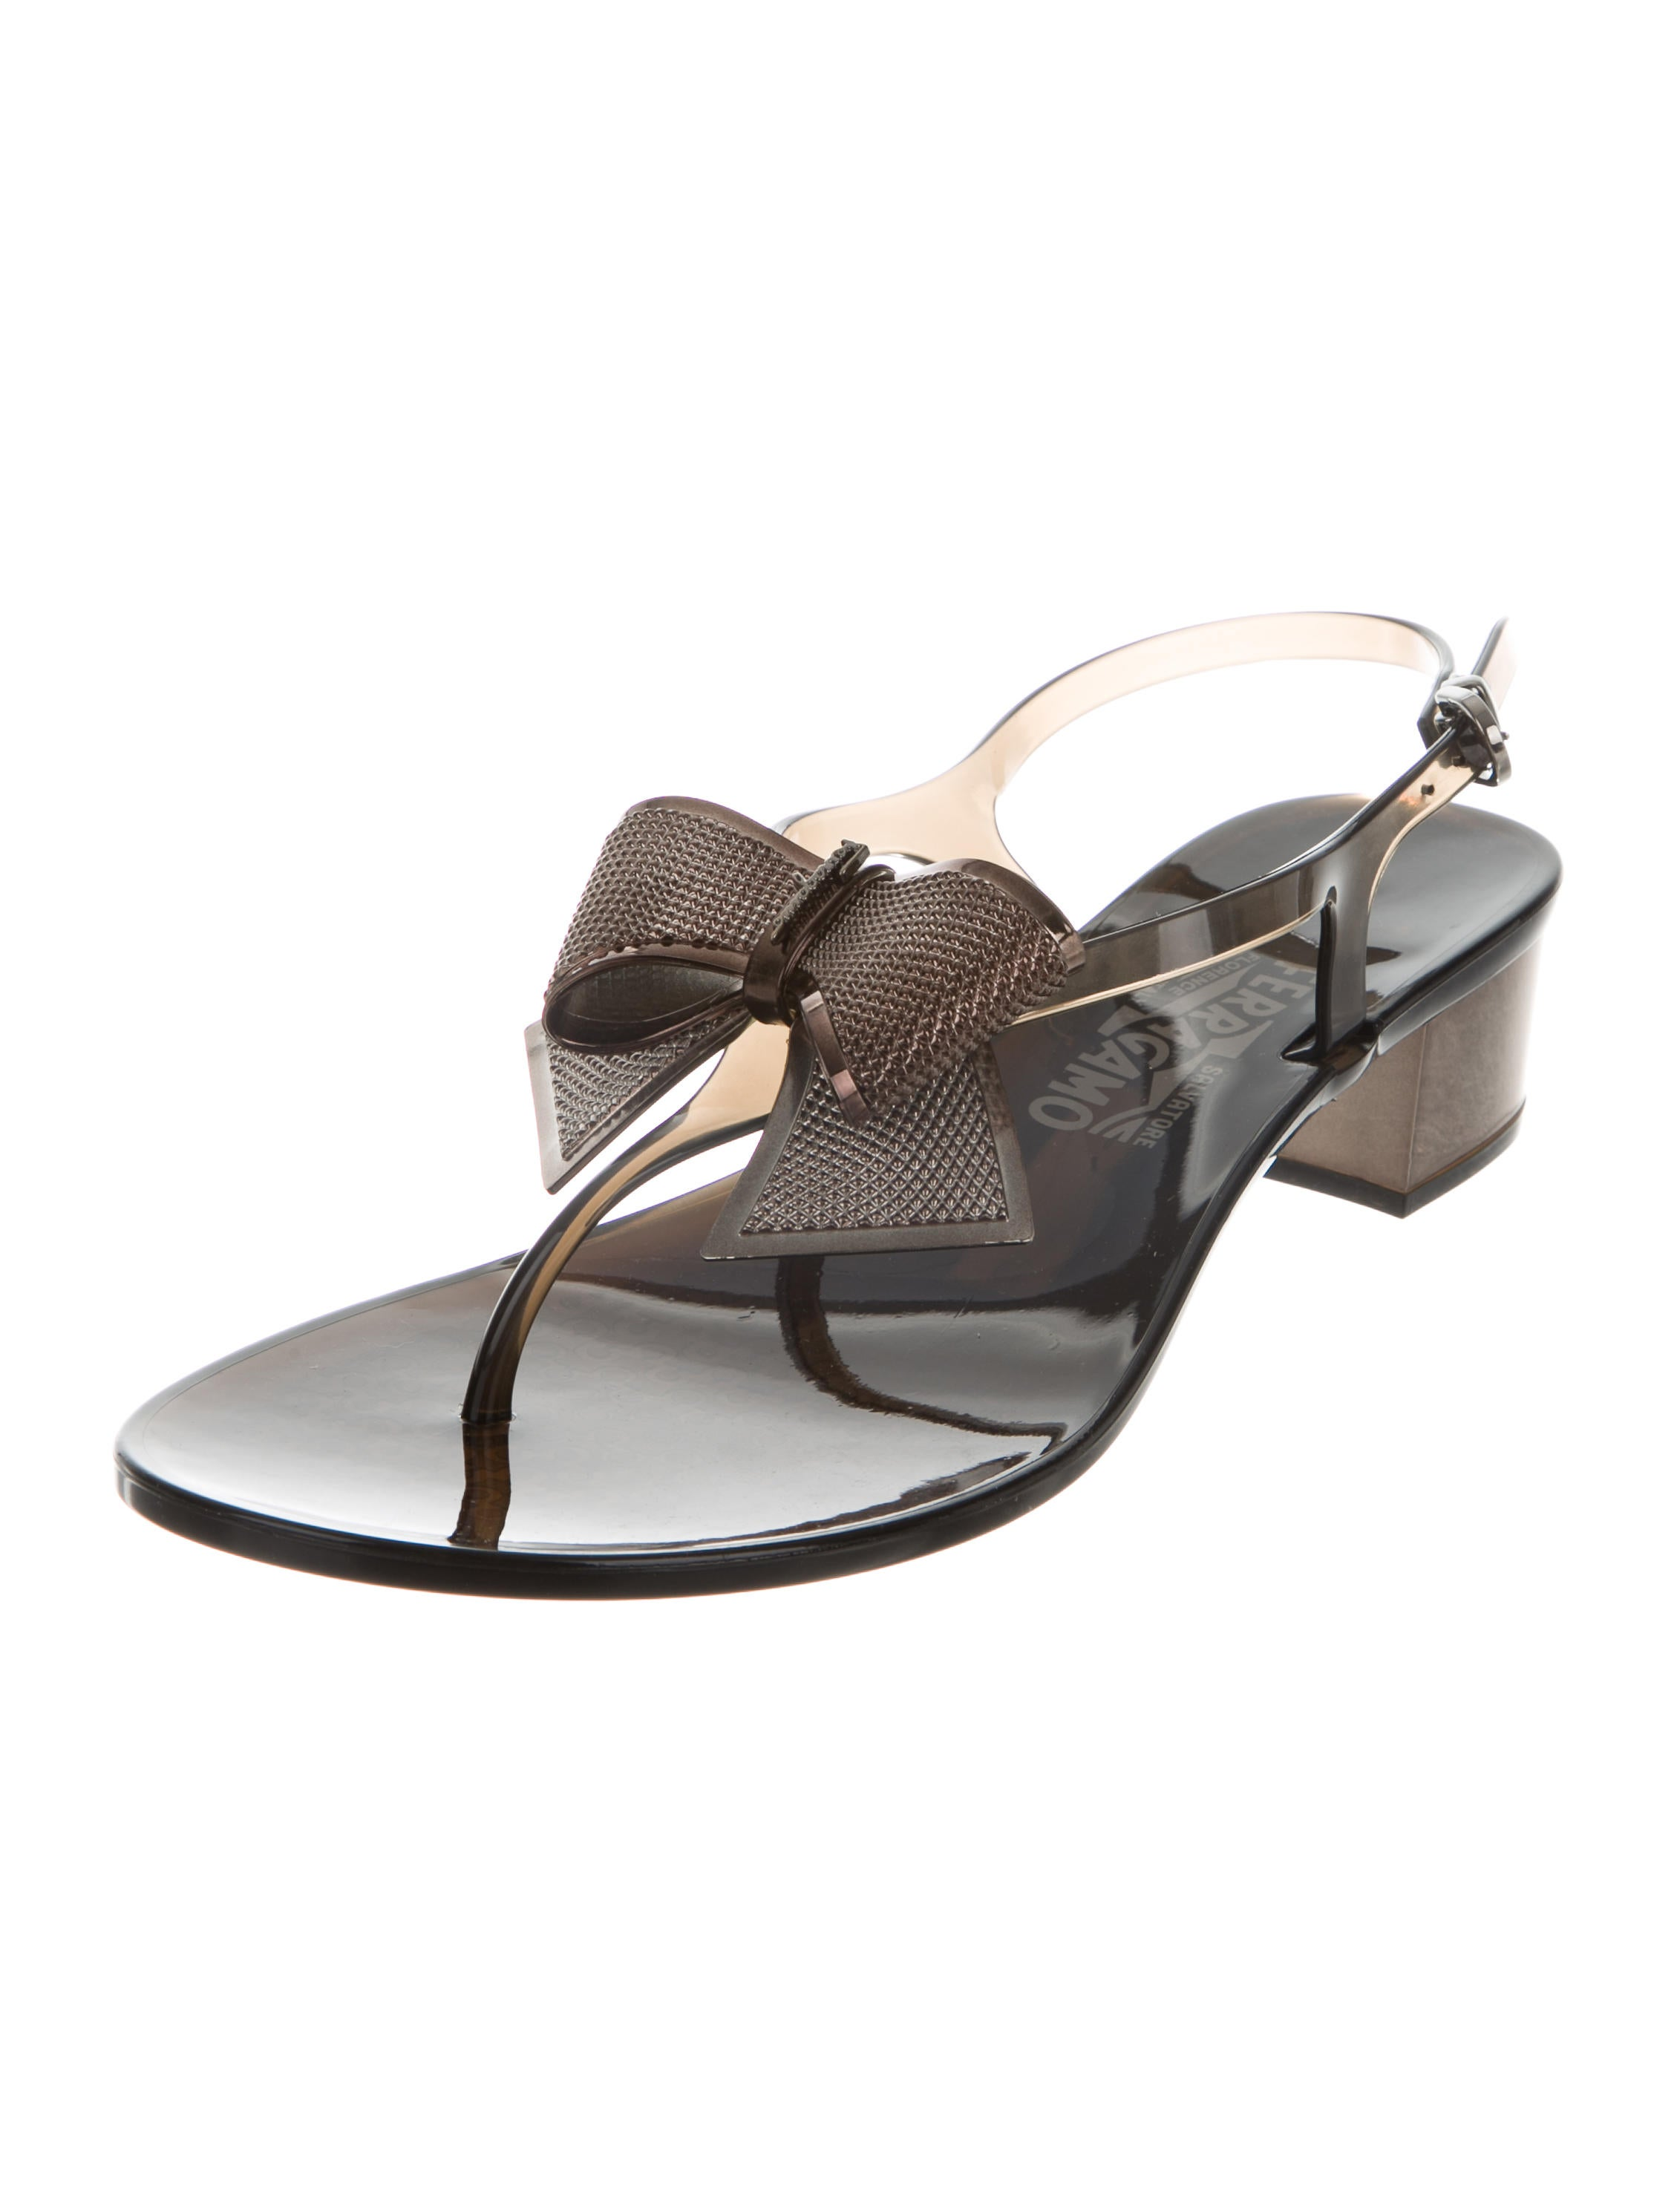 buy cheap manchester great sale best store to get Salvatore Ferragamo Bow-Accented Thong Sandals w/ Tags buy cheap best wholesale under $60 online limited edition online ox81g